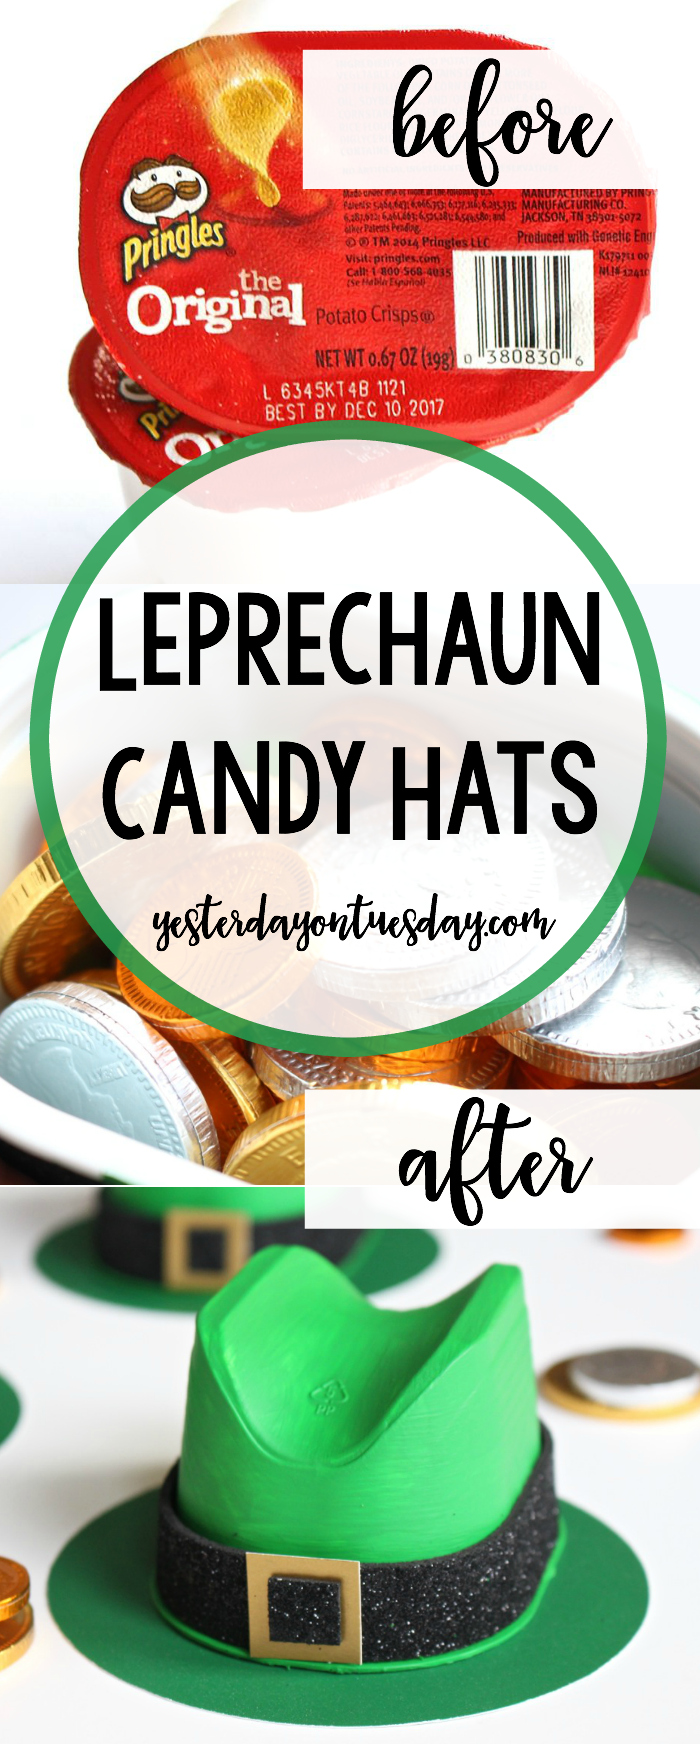 Leprechaun Candy Hats: How to transform plastic containers into cute Leprechaun Hats filled with candy for St. Patricks Day! Awesome classroom craft project for kids.